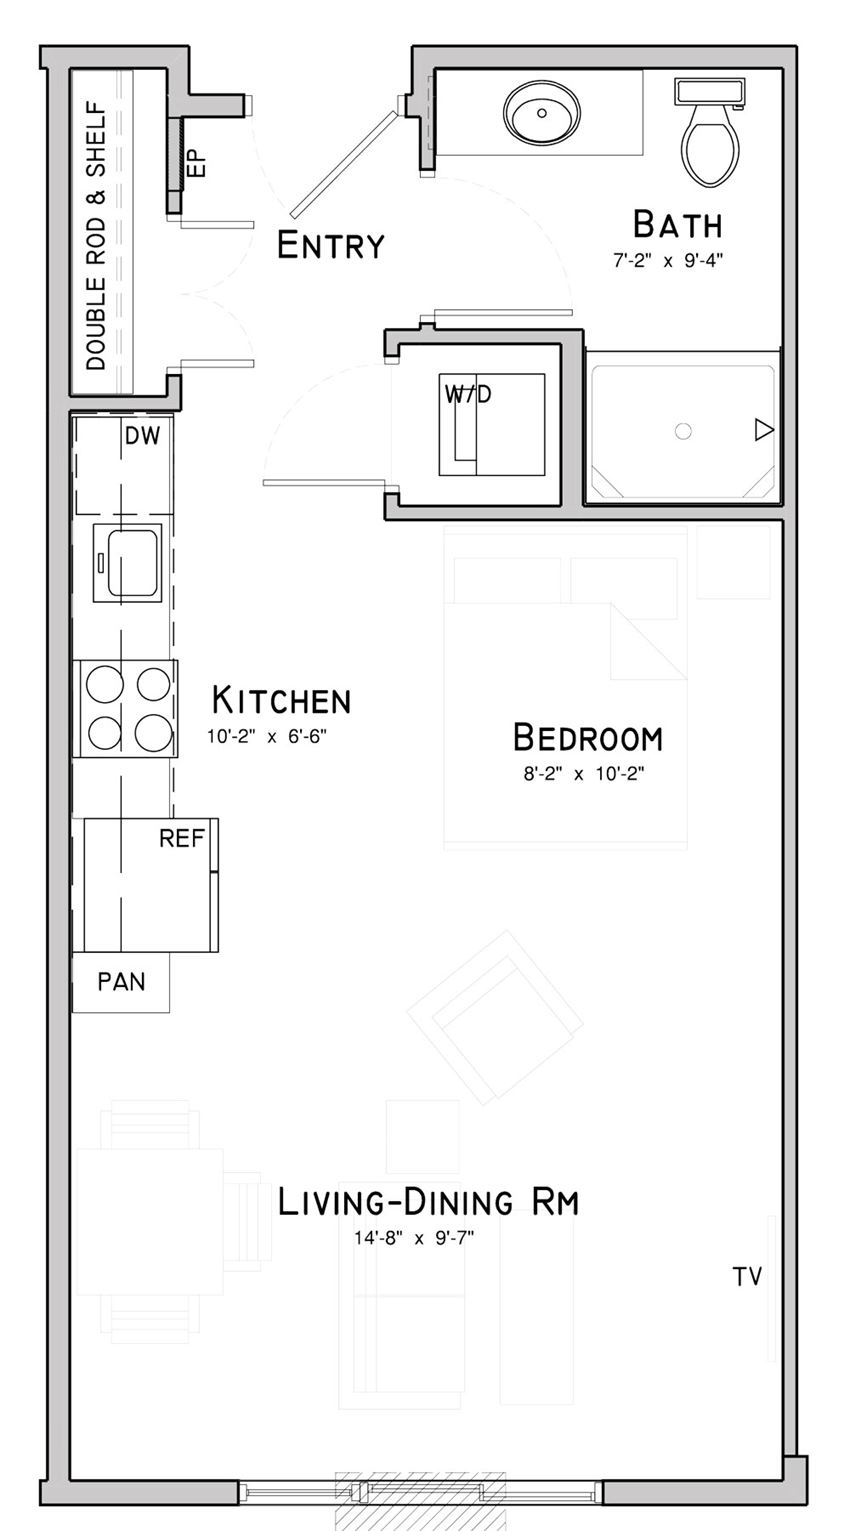 Studio apartment-Clover layout at WH Flats in south Lincoln NE